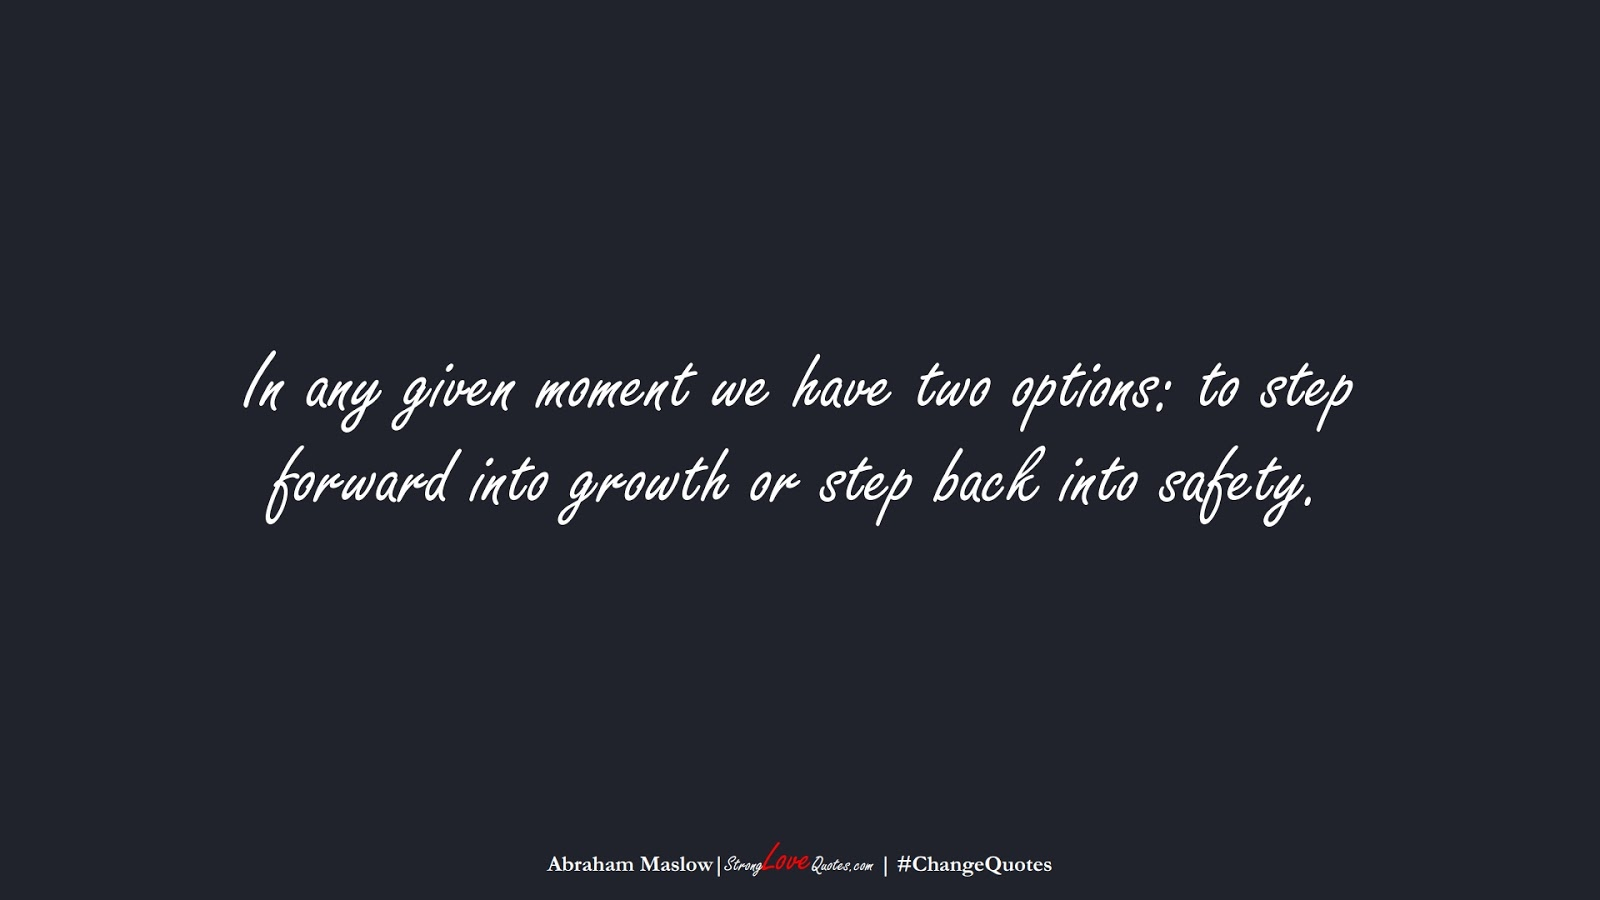 In any given moment we have two options: to step forward into growth or step back into safety. (Abraham Maslow);  #ChangeQuotes